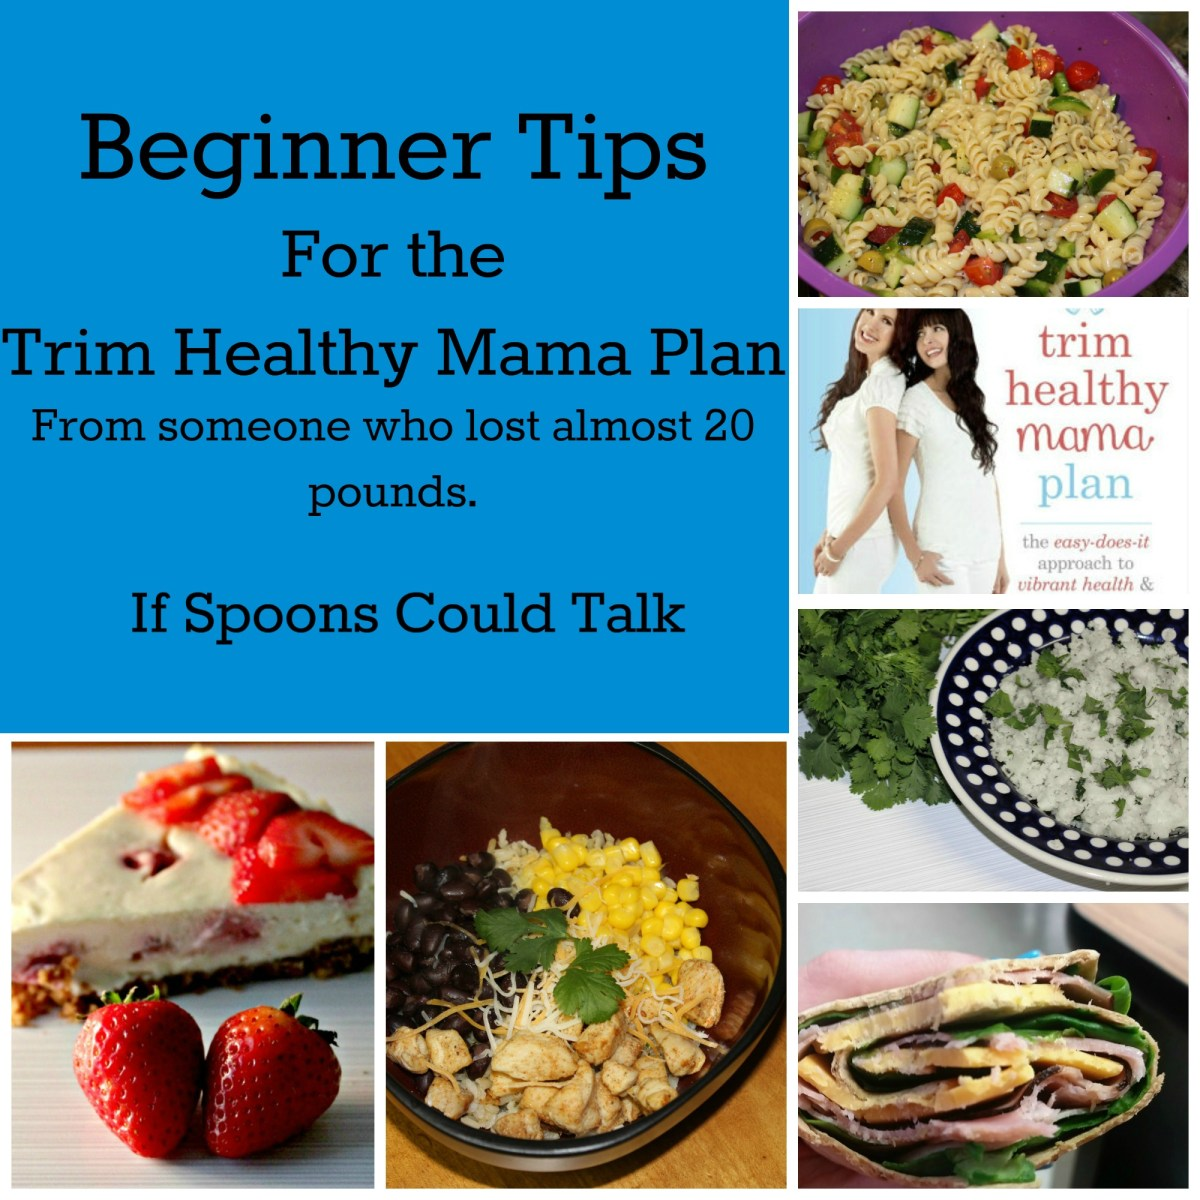 Trim Healthy Mama Tips for Beginners